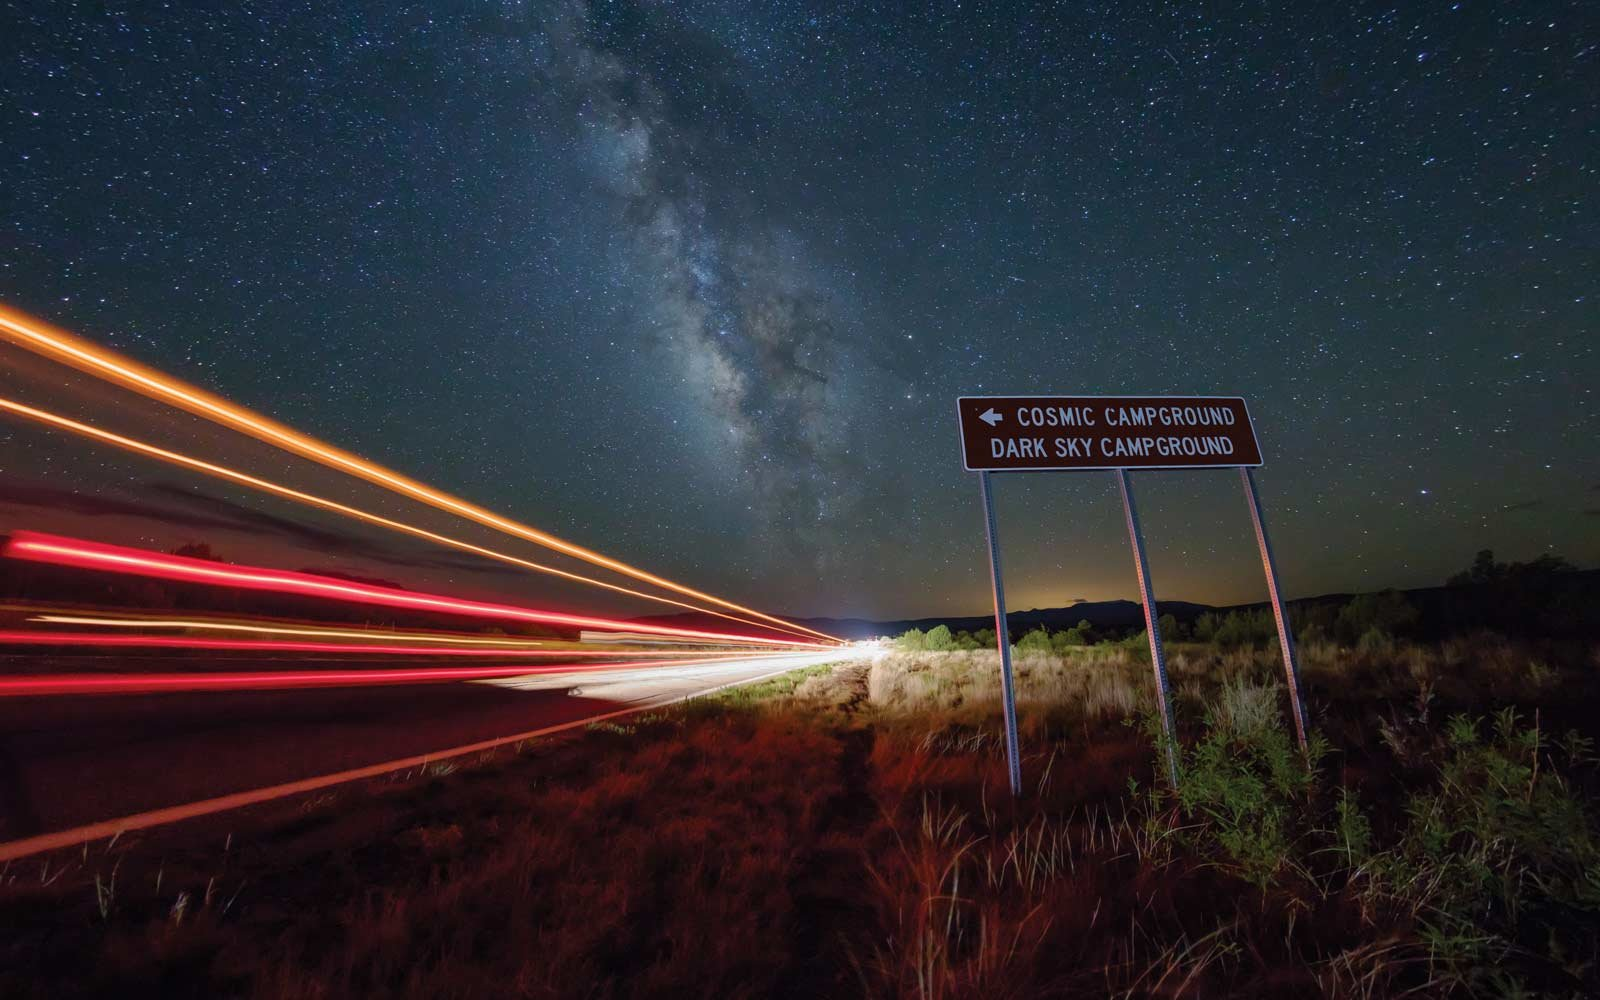 Cosmic Campground, New Mexico